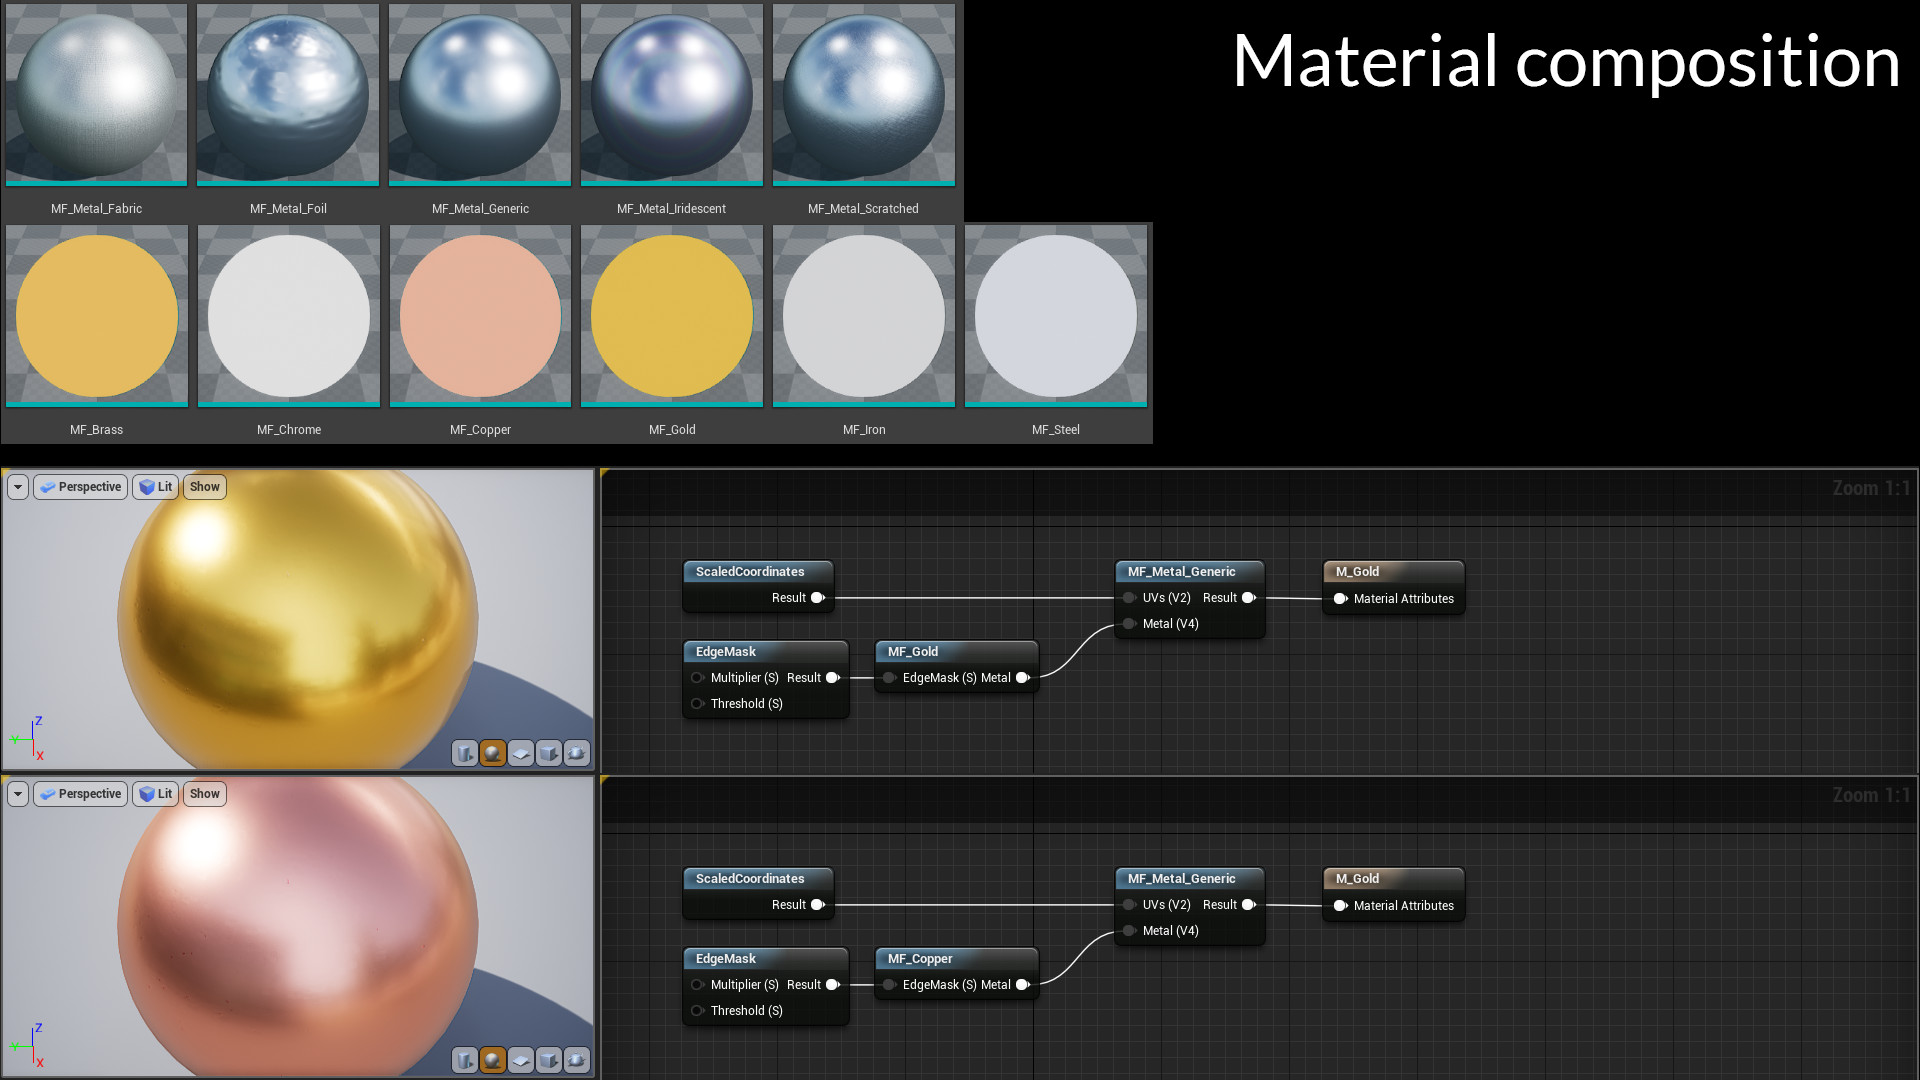 Material composition system